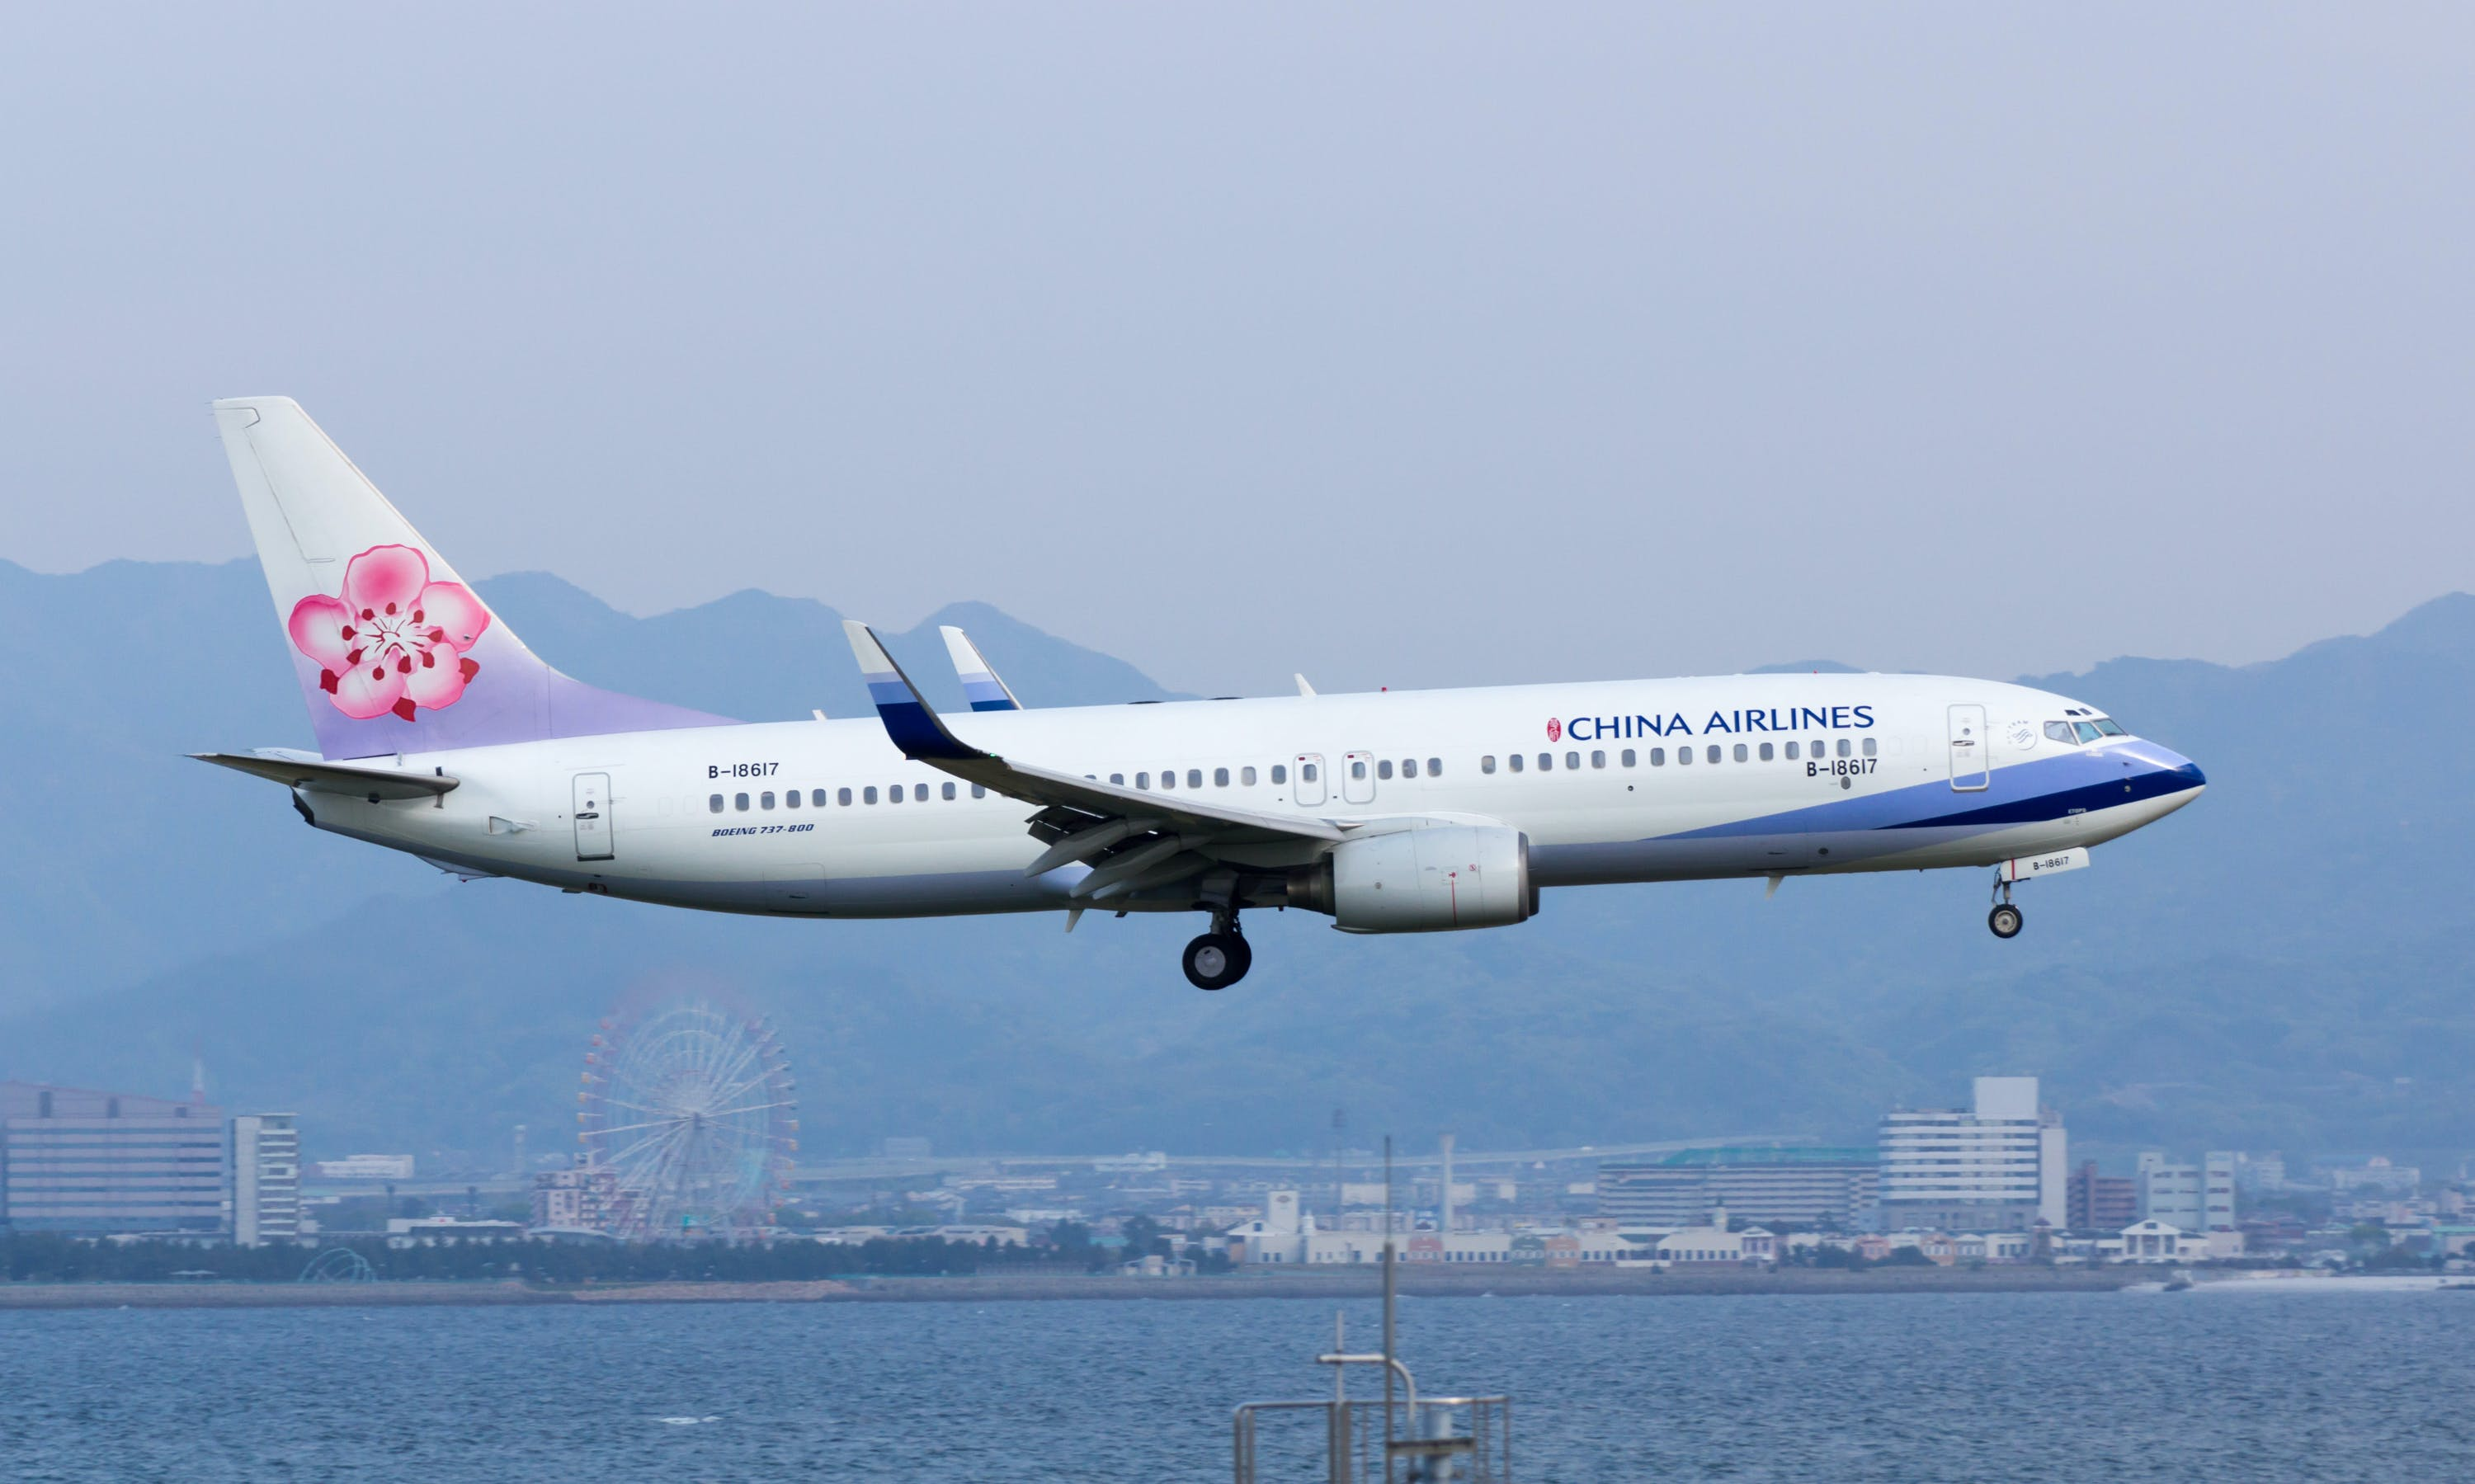 Taiwan News: Transport Ministry Mediates as Pilots' Strike Enters 4th Day